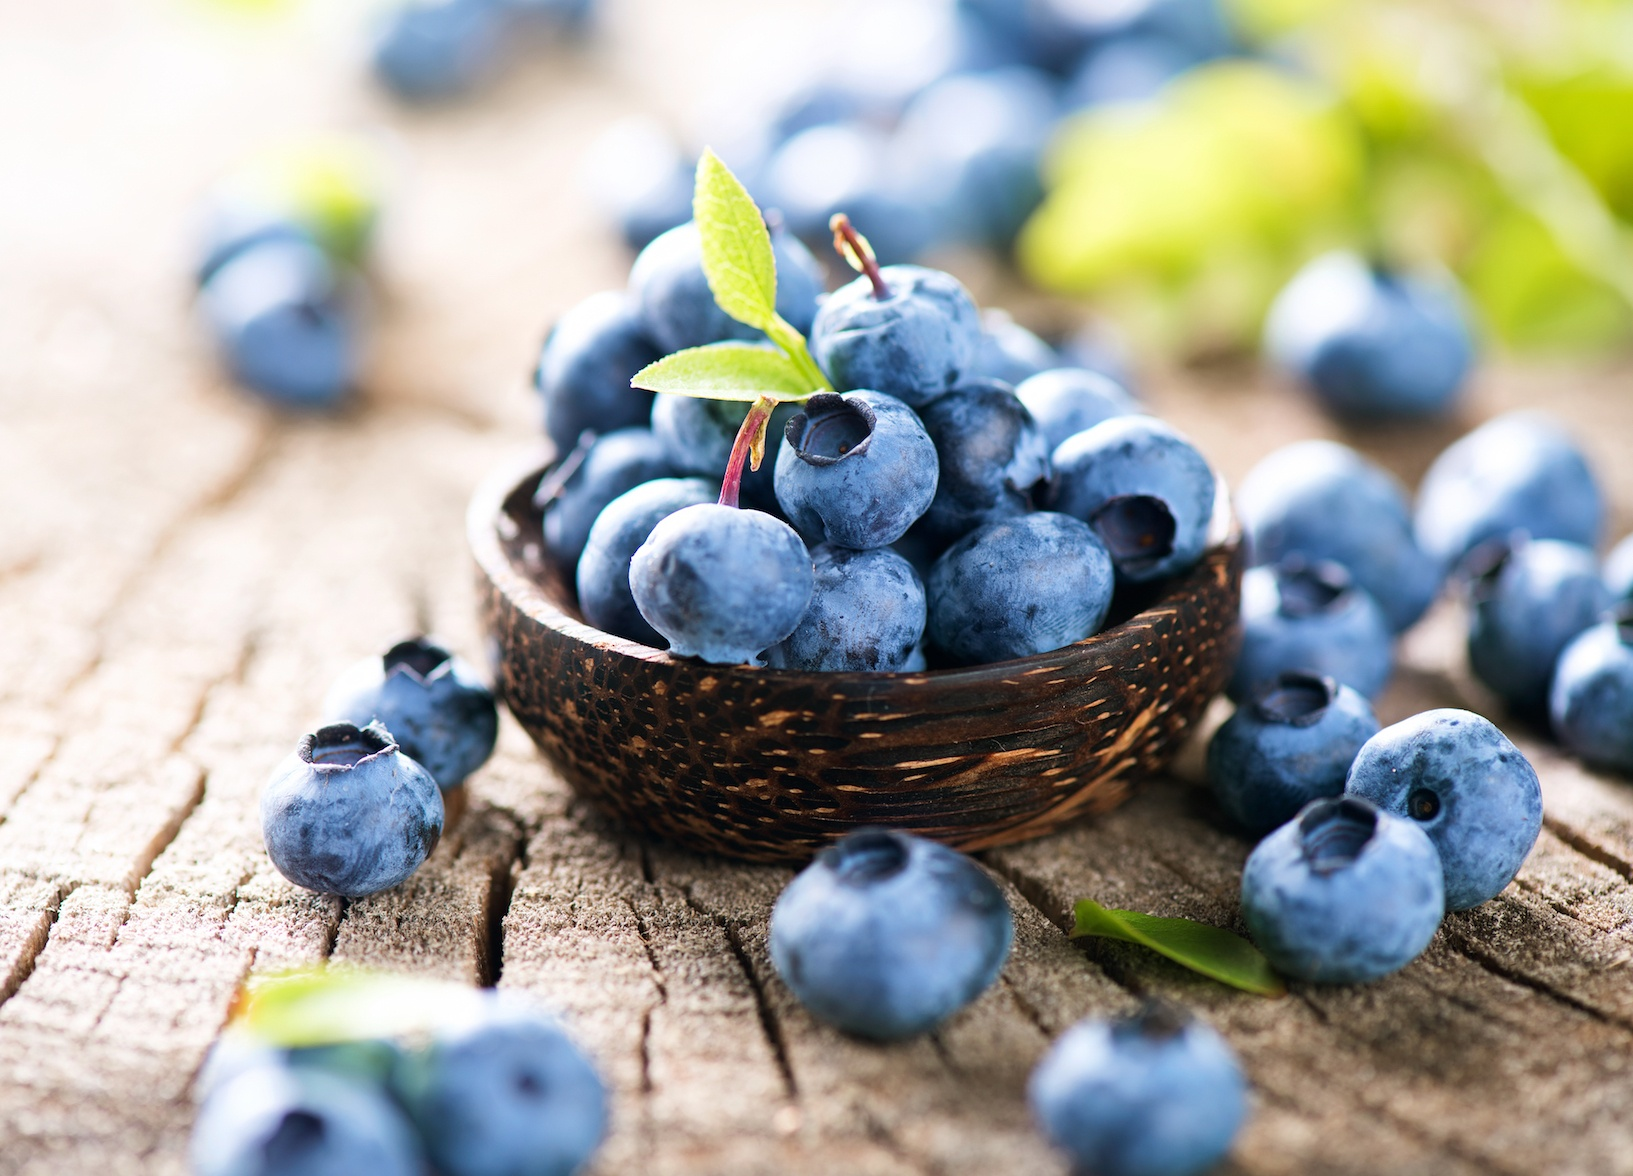 Blueberries turn out better when grown alongside grass • Earth.com